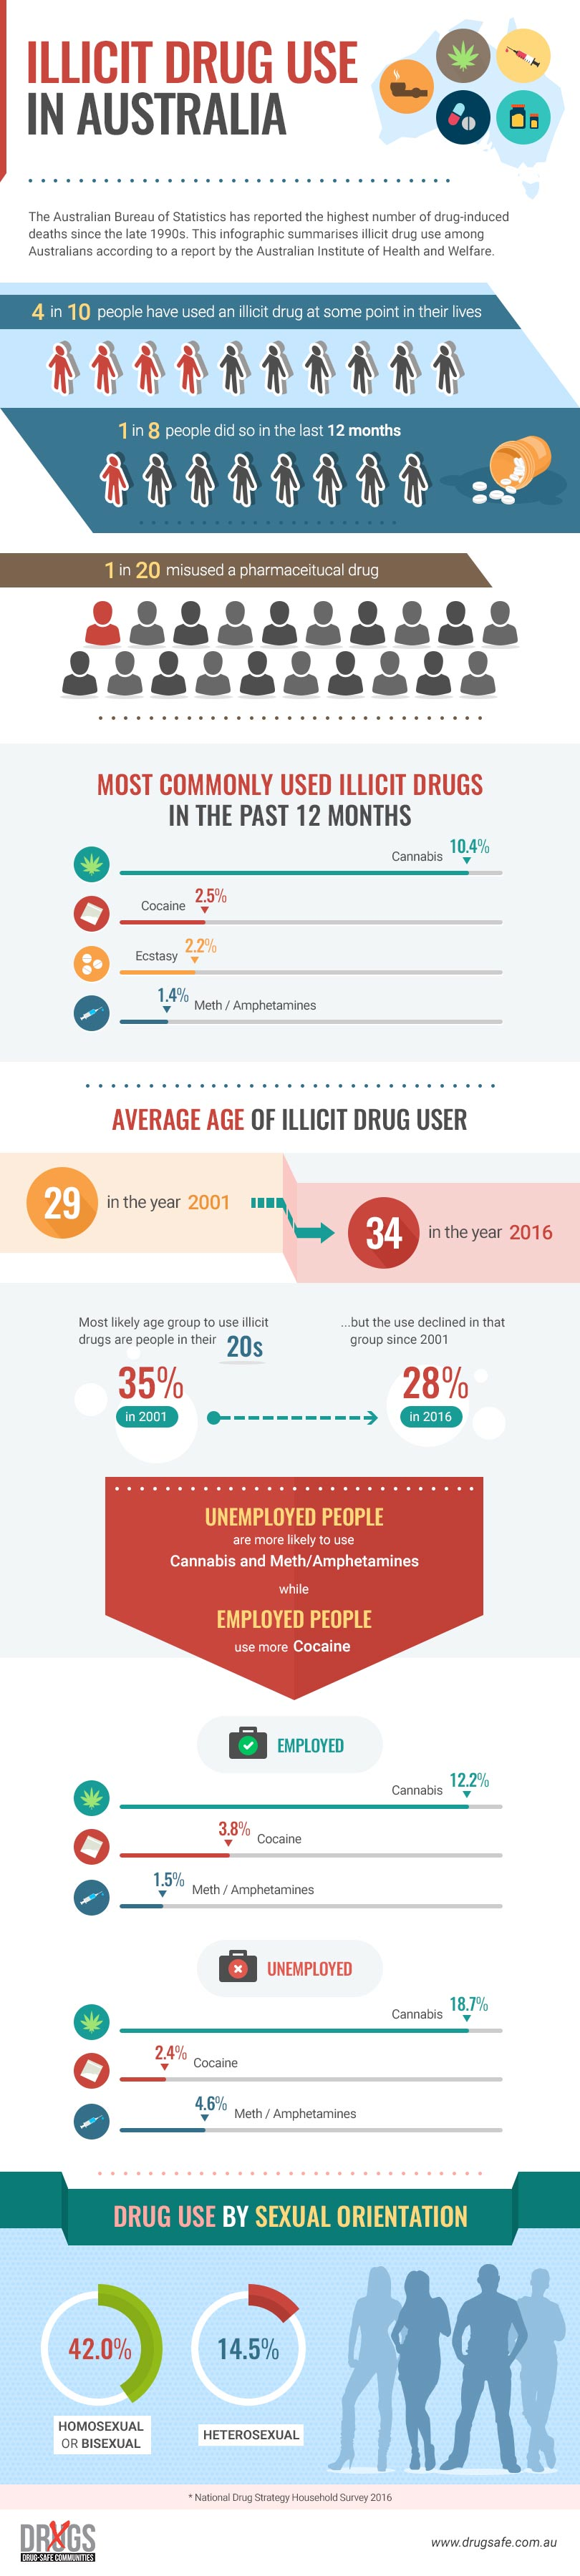 illicit drug use in Australia infographic